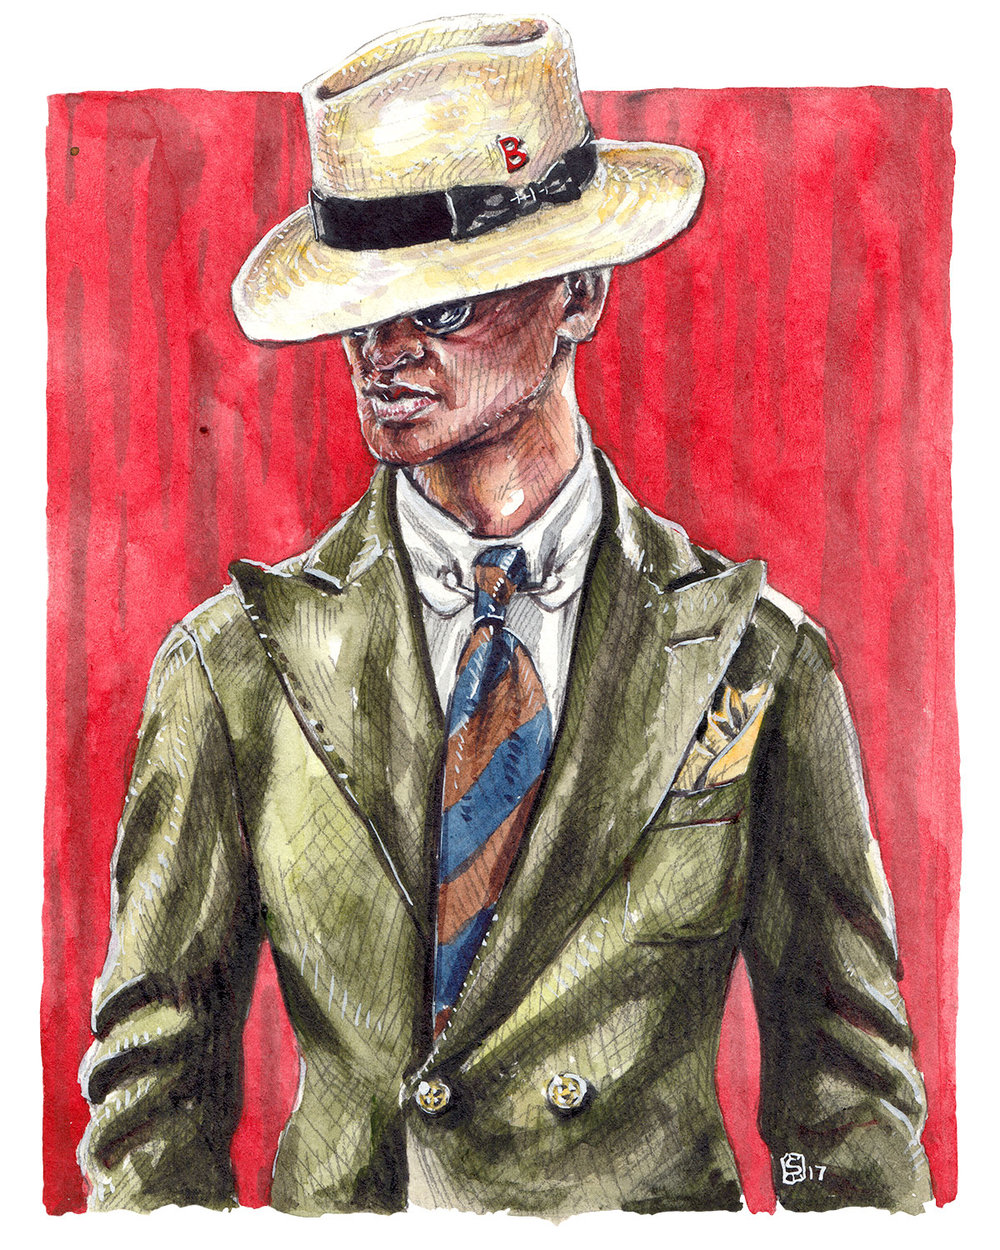 My Bob - Panama Hat Promo Illustration